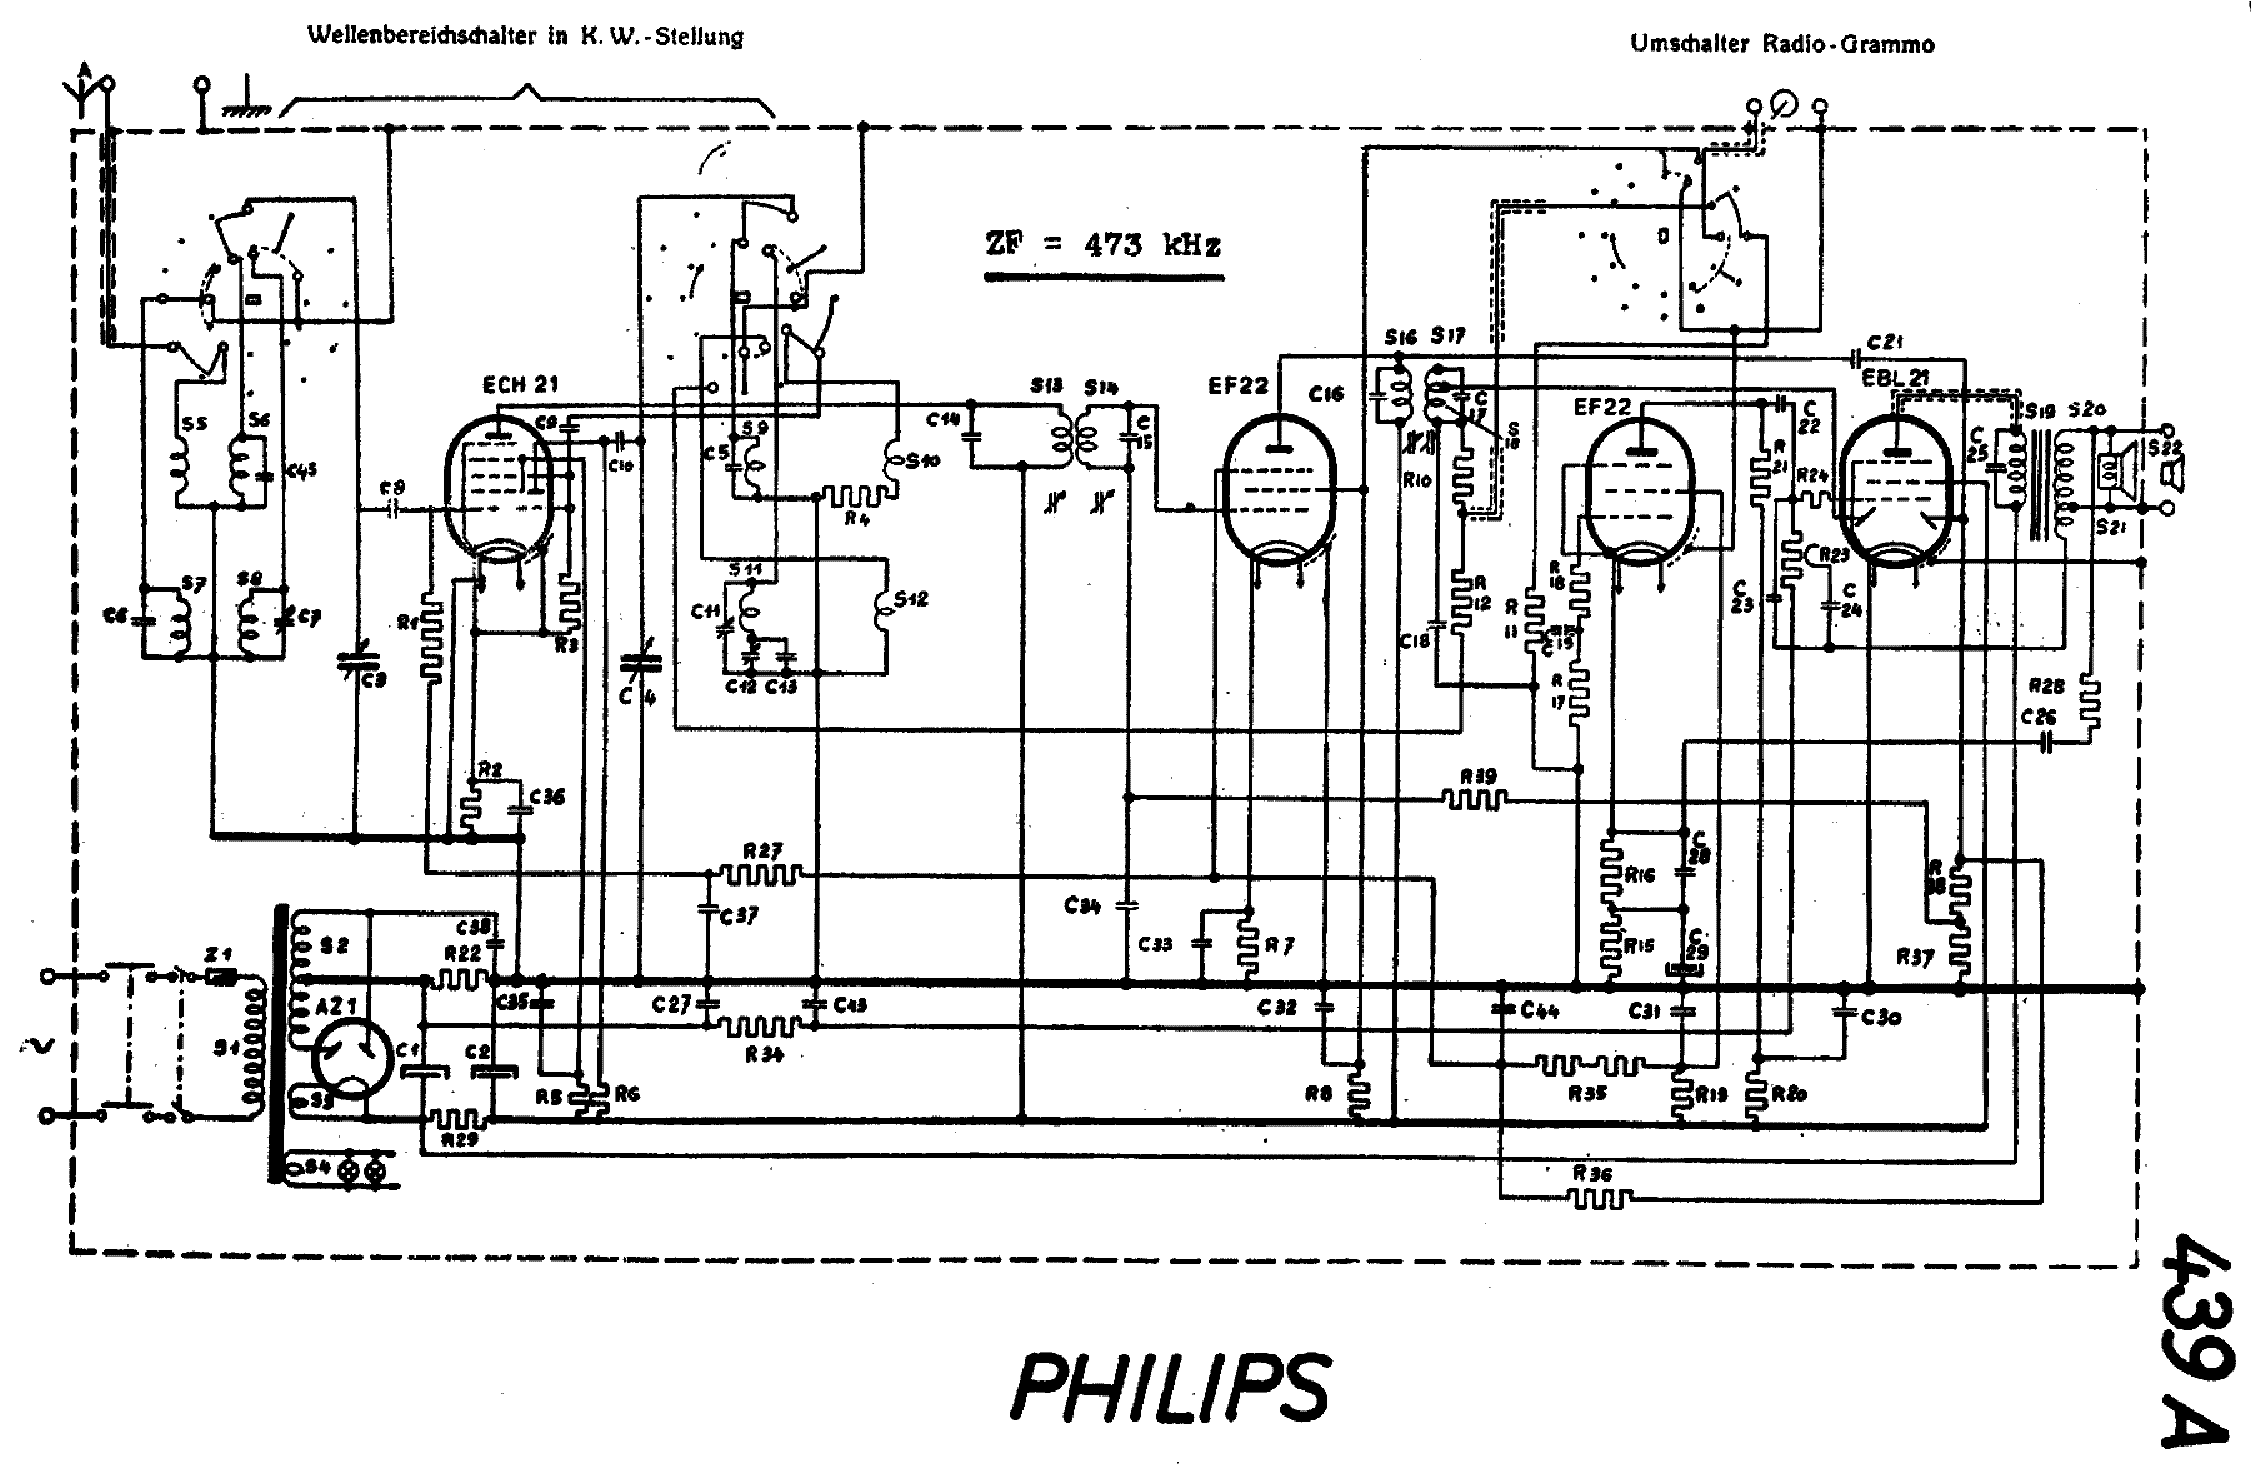 PHILIPS FW356C SCH Service Manual free download